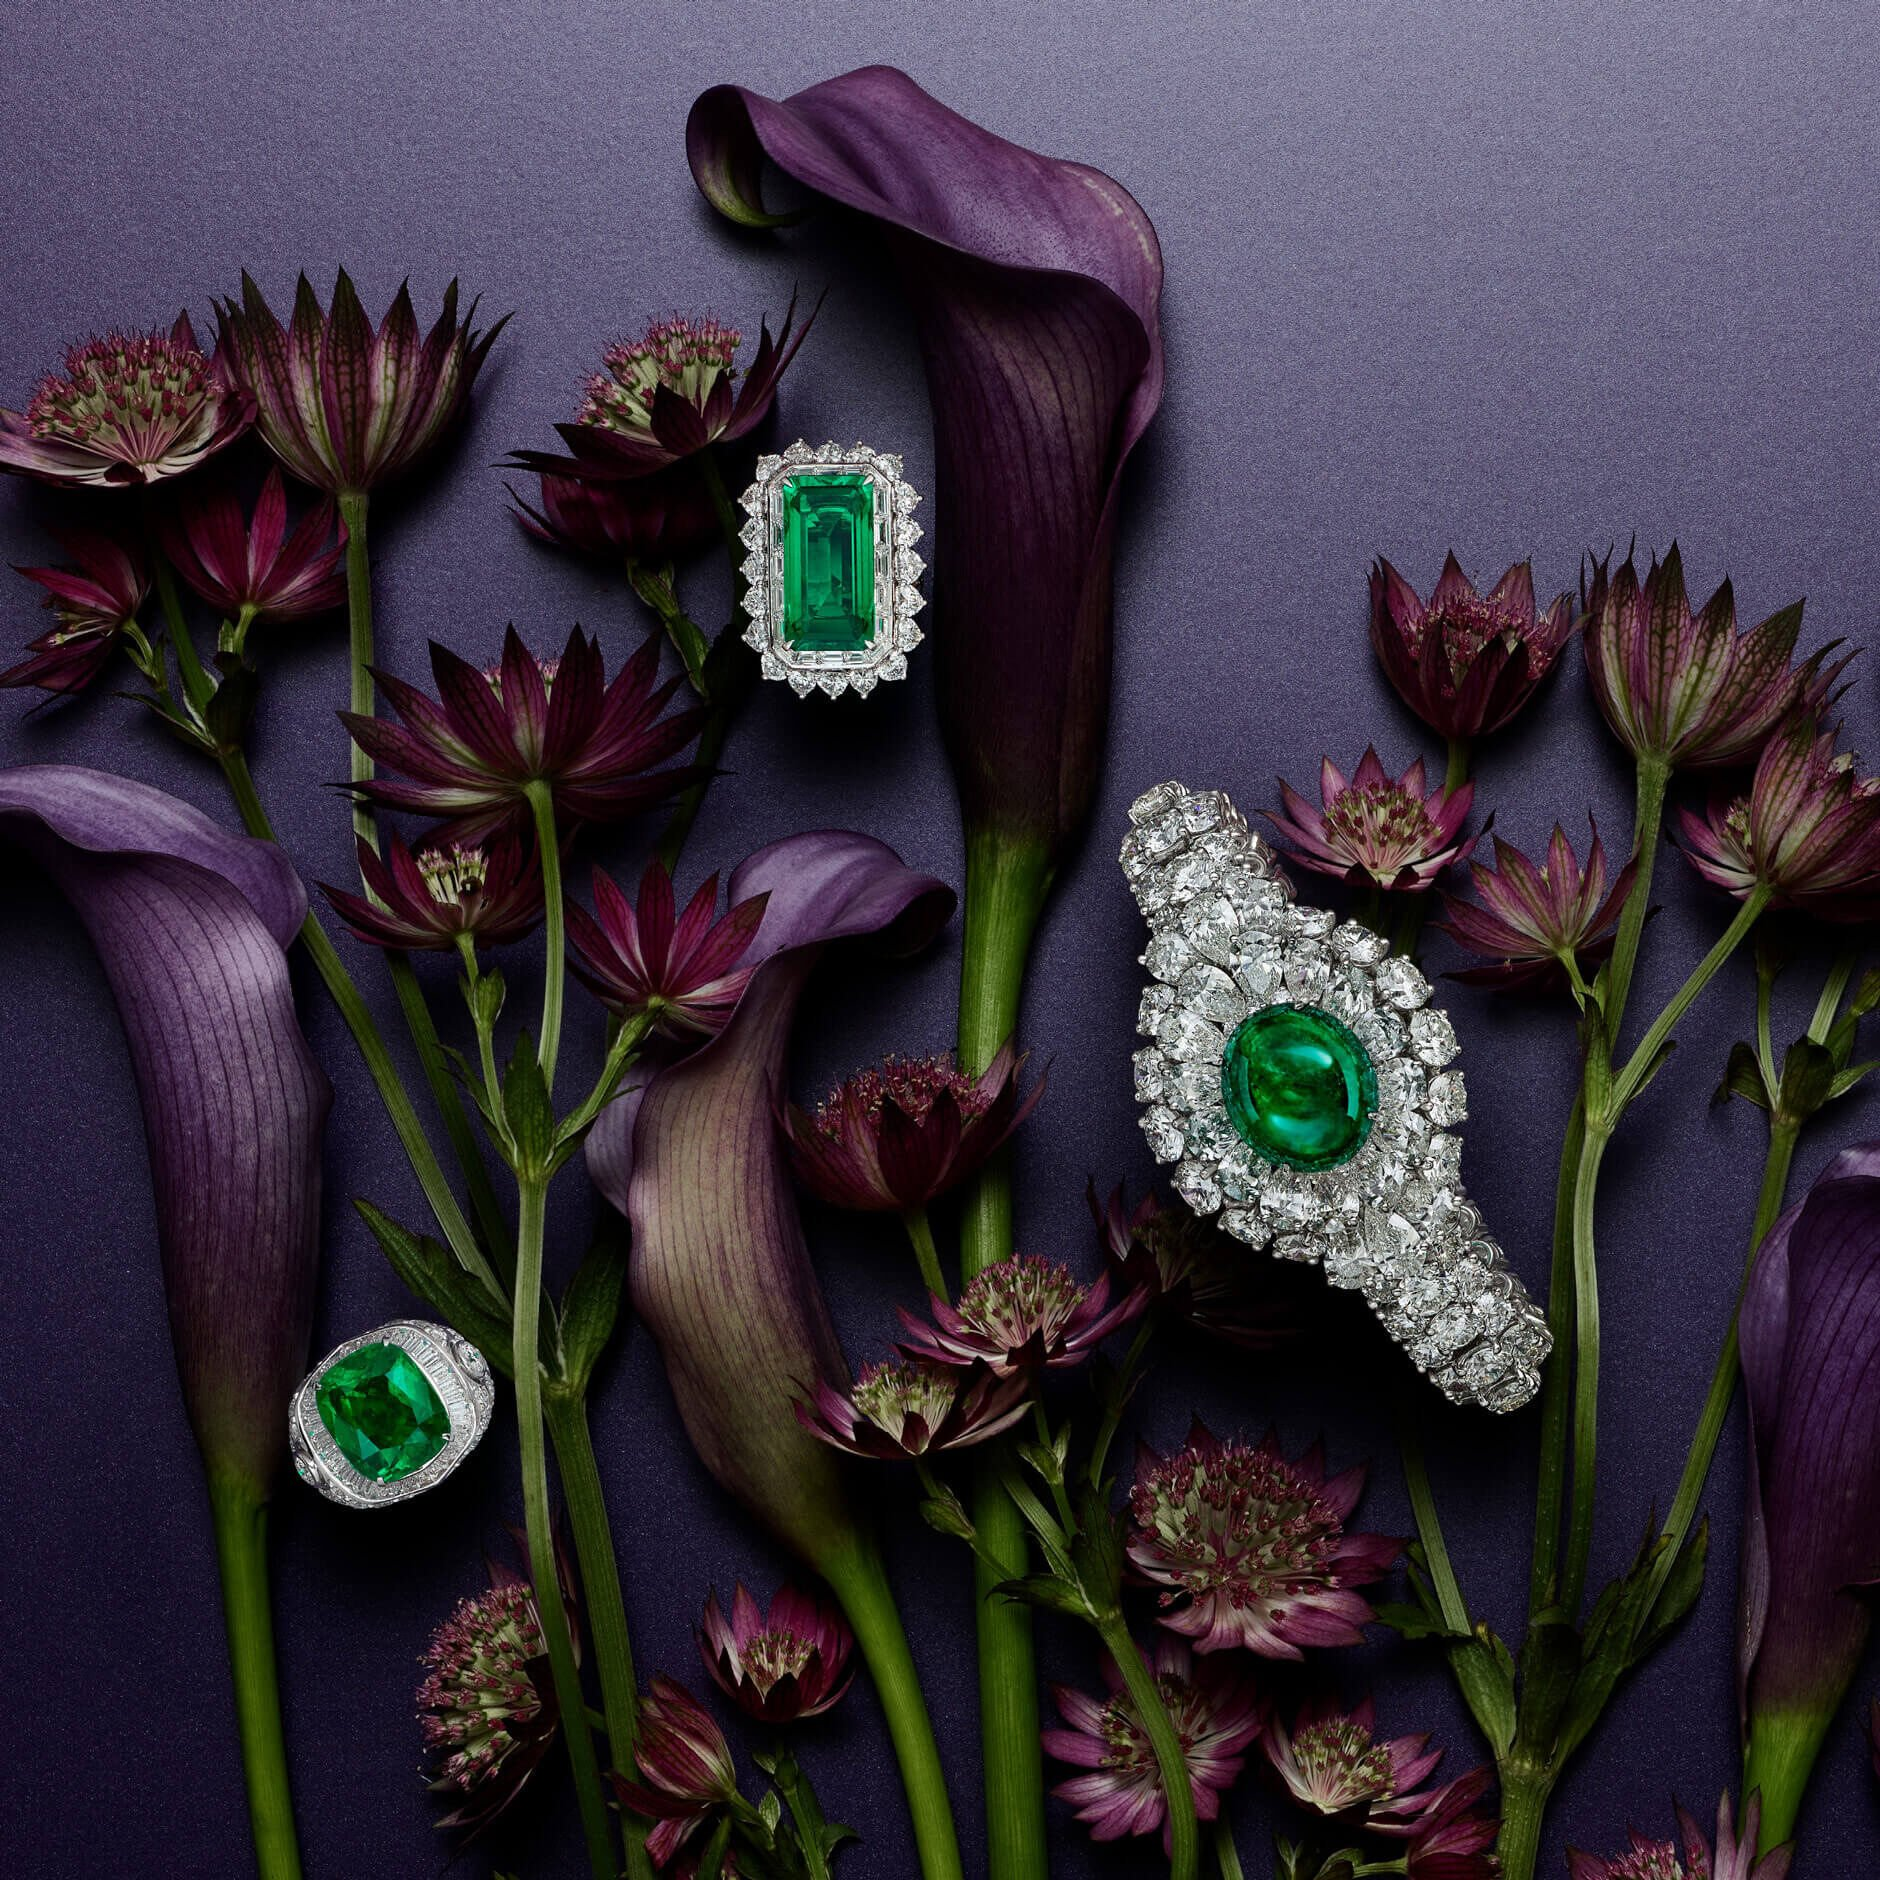 Graff emerald and diamond High jewellery with flowers decorations